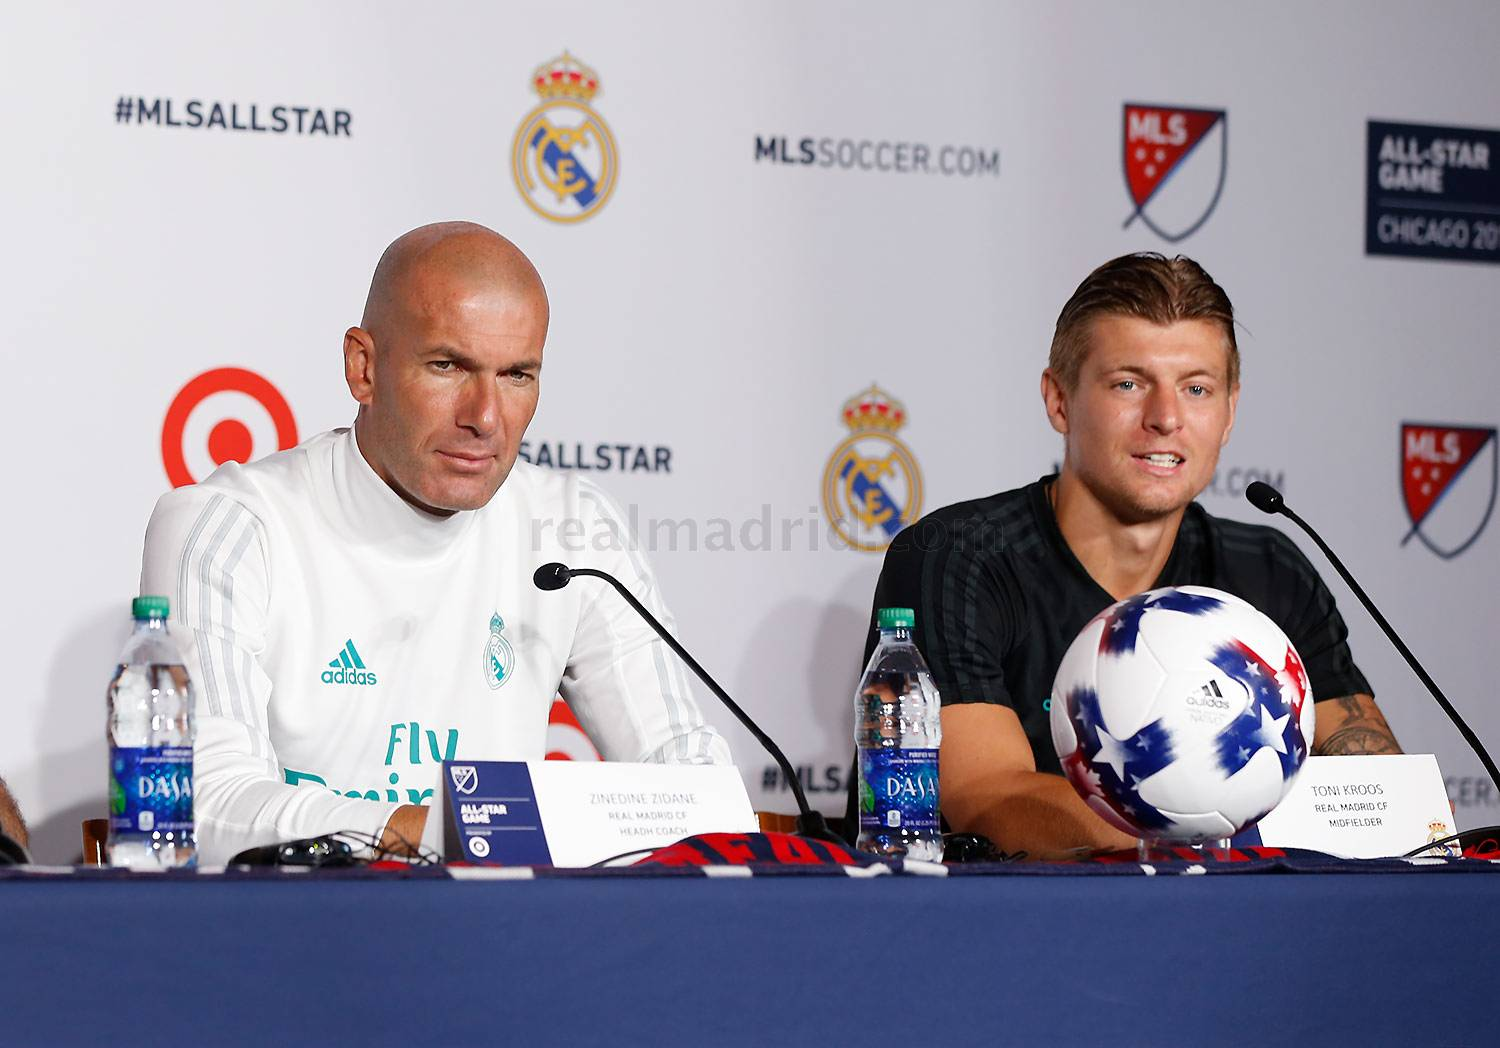 Real Madrid - Conferencia de prensa en Chicago - 01-08-2017